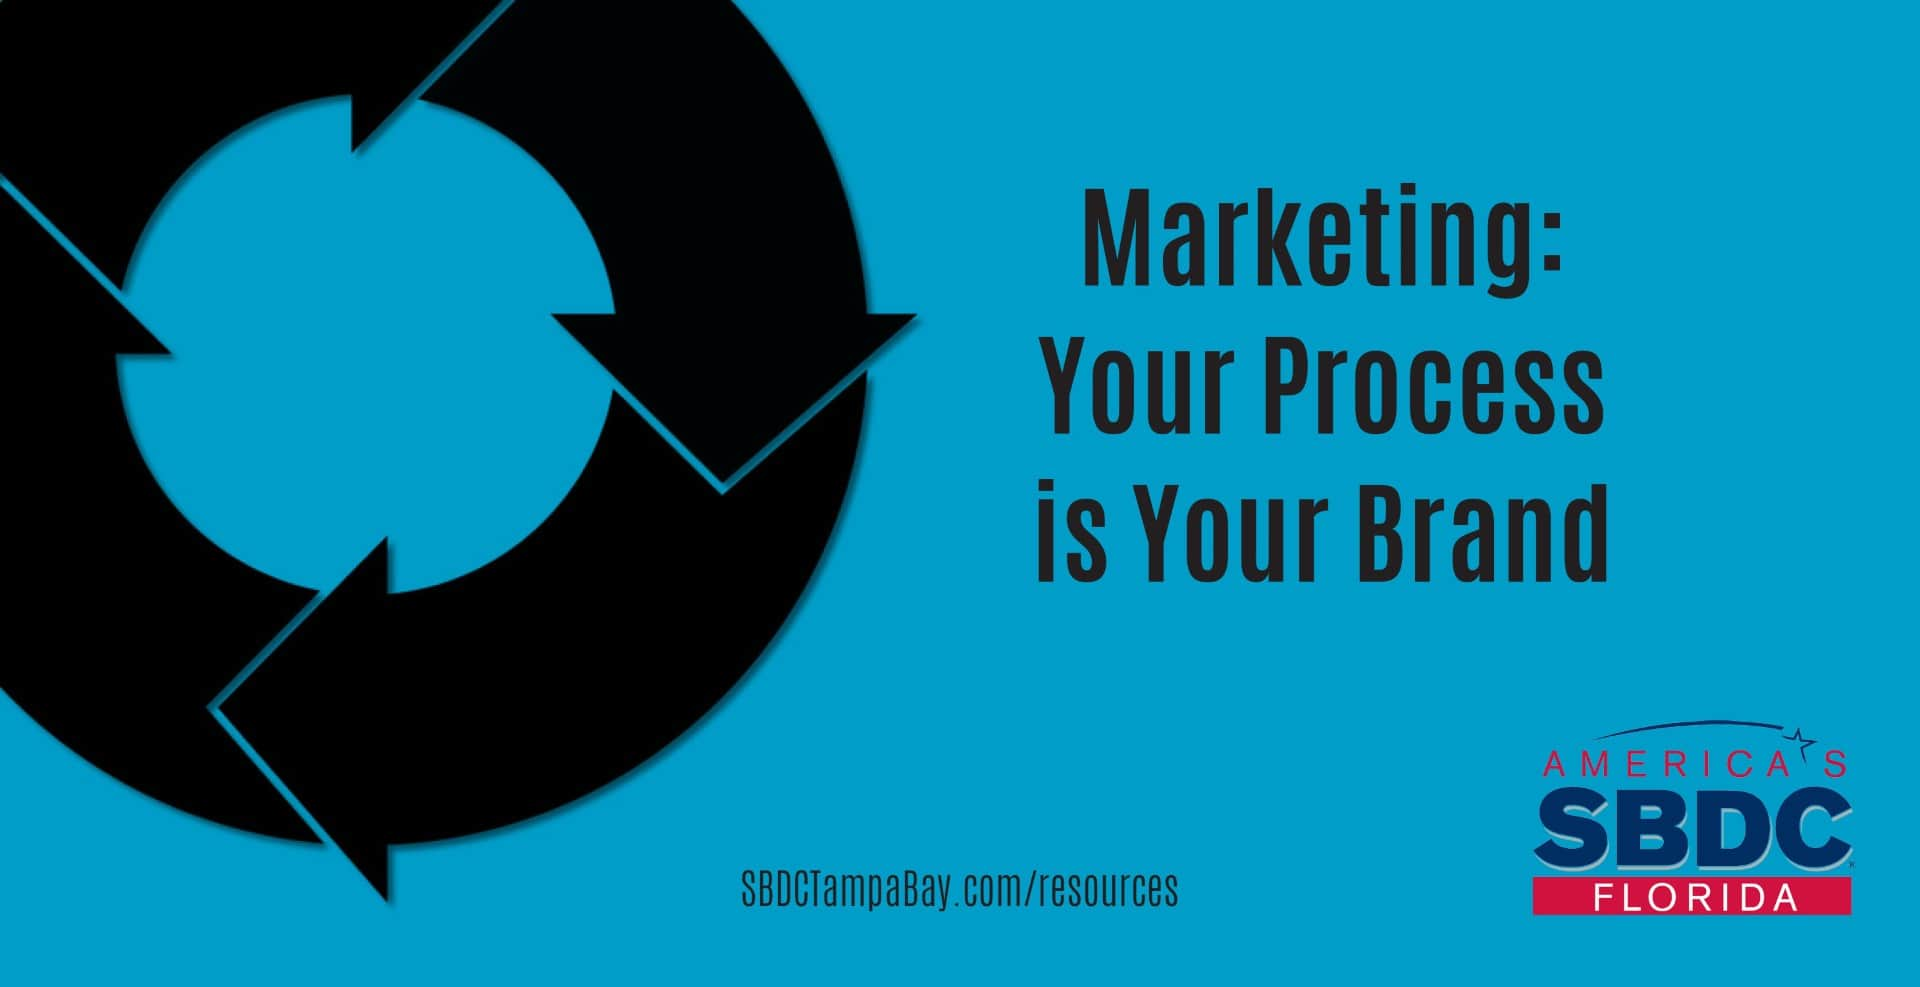 Marketing: Your Process is Your Brand